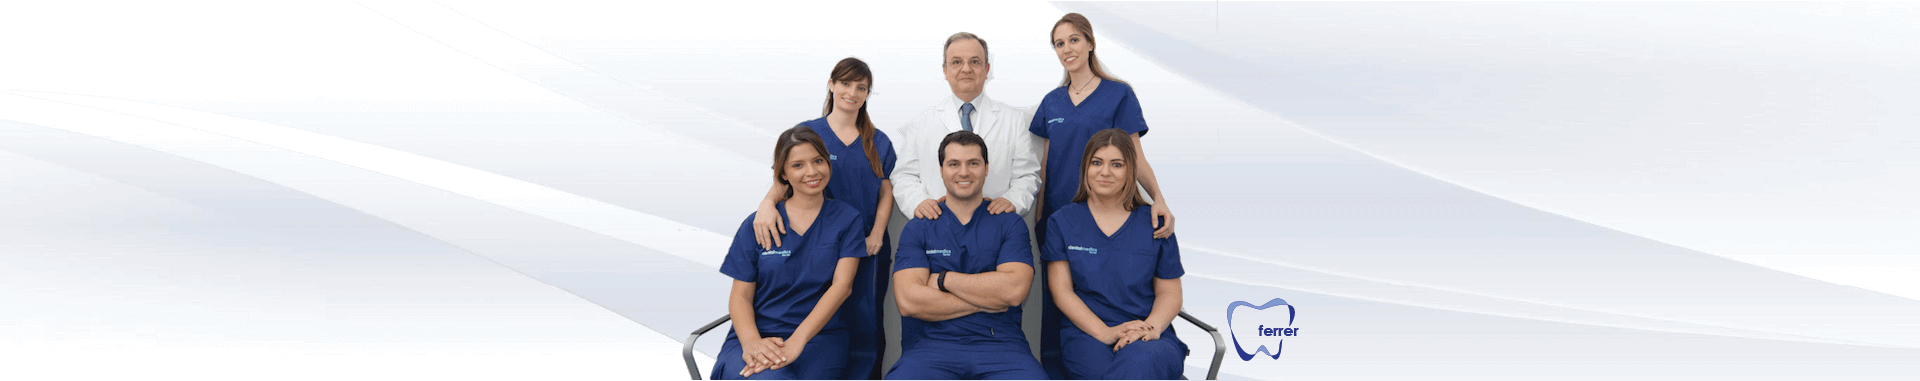 Estetica dental Madrid